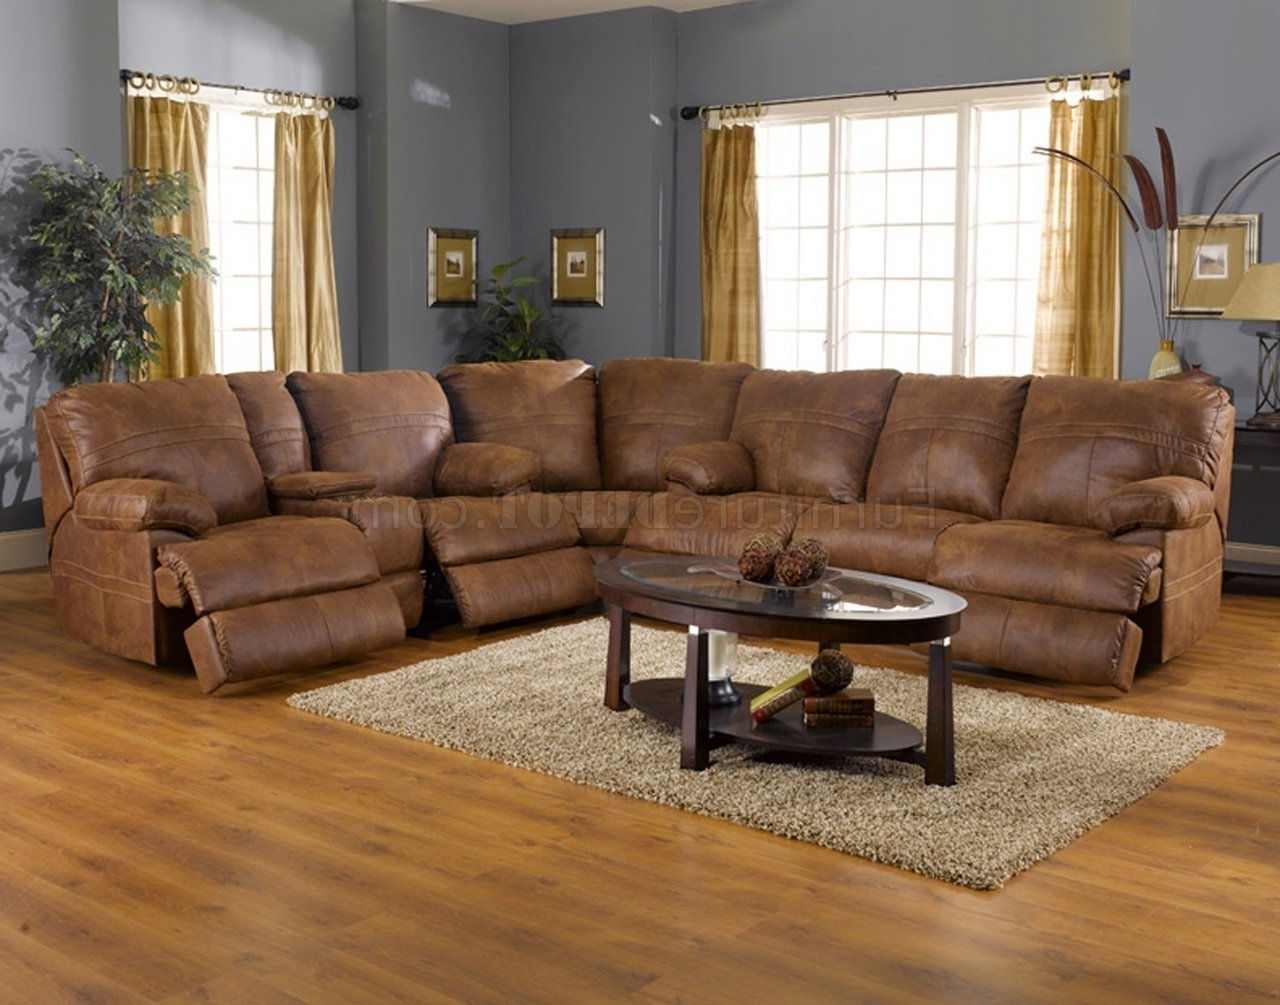 Rich Tanner Faux Leather Fabric Ranger Modern Sectional Sofa For Well Known Faux Leather Sectional Sofas (View 5 of 20)